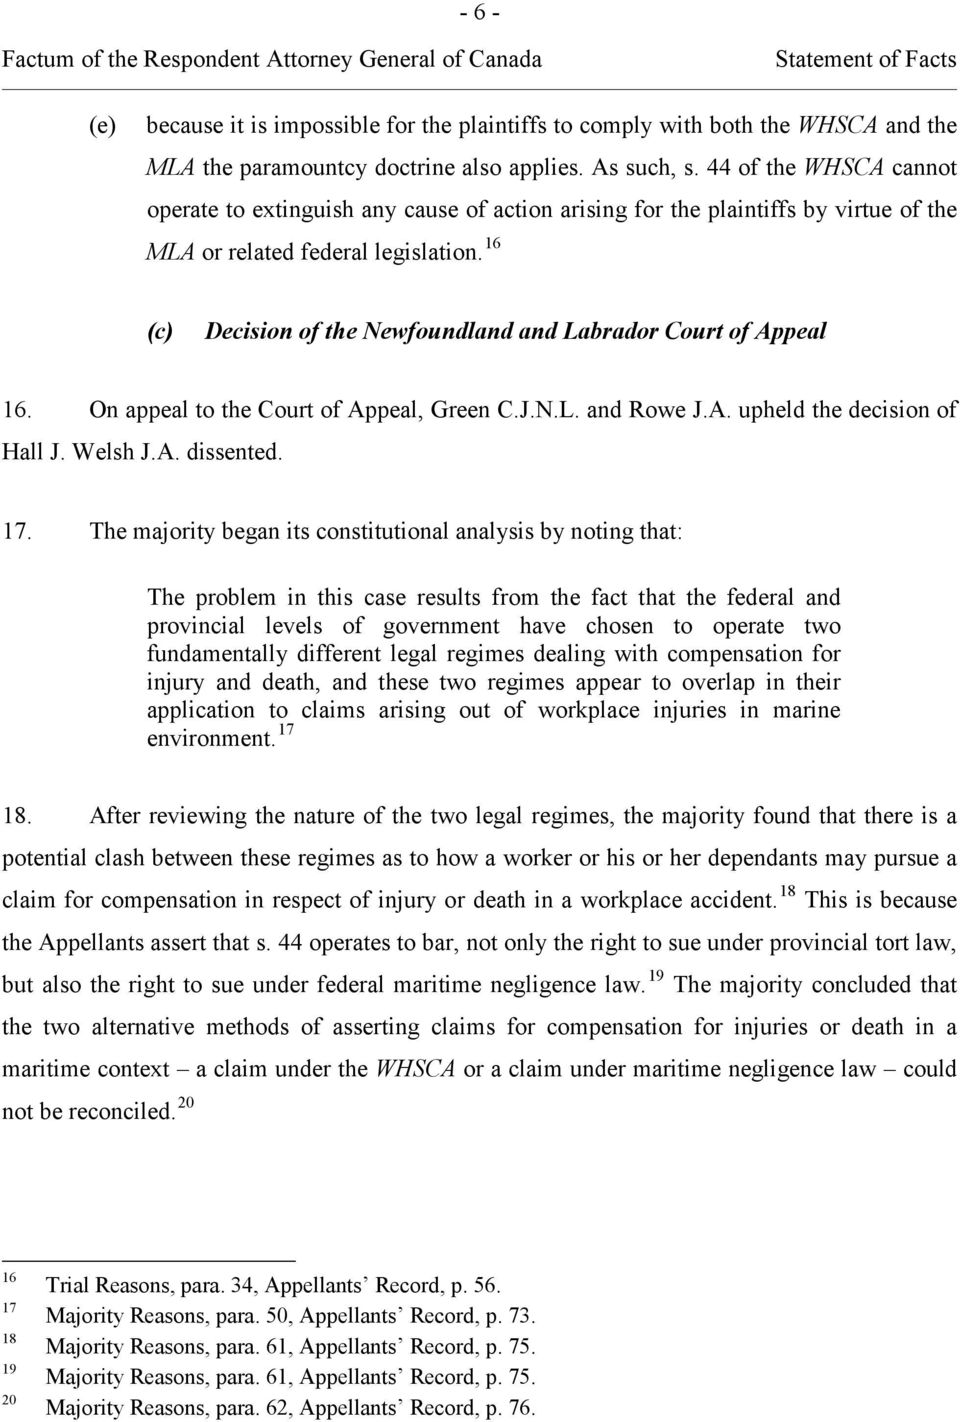 16 (c) Decision of the Newfoundland and Labrador Court of Appeal 16. On appeal to the Court of Appeal, Green C.J.N.L. and Rowe J.A. upheld the decision of Hall J. Welsh J.A. dissented. 17.